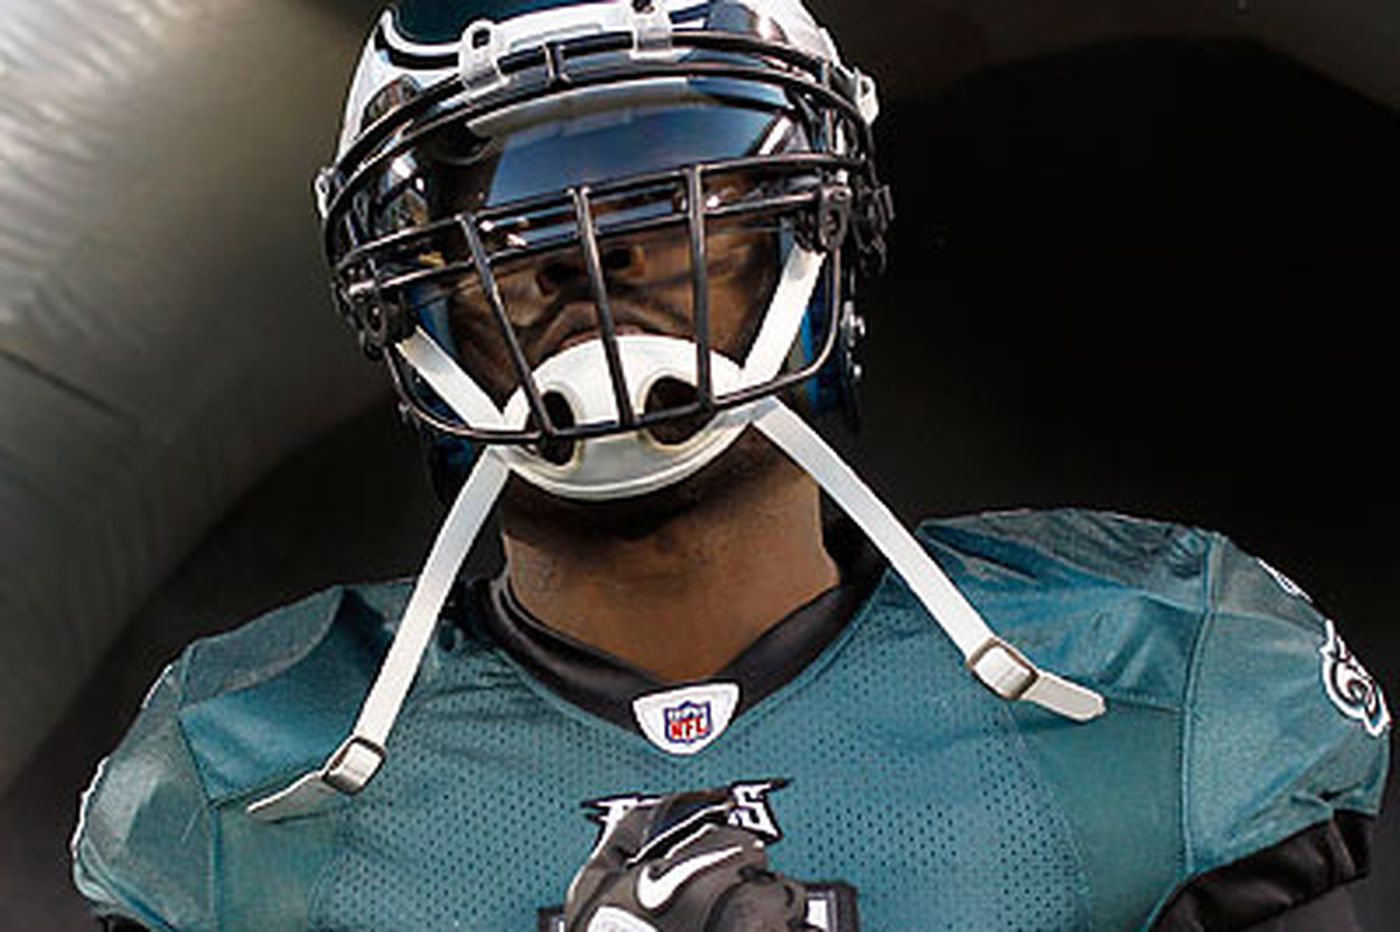 Improved play from Vick is a positive for Eagles